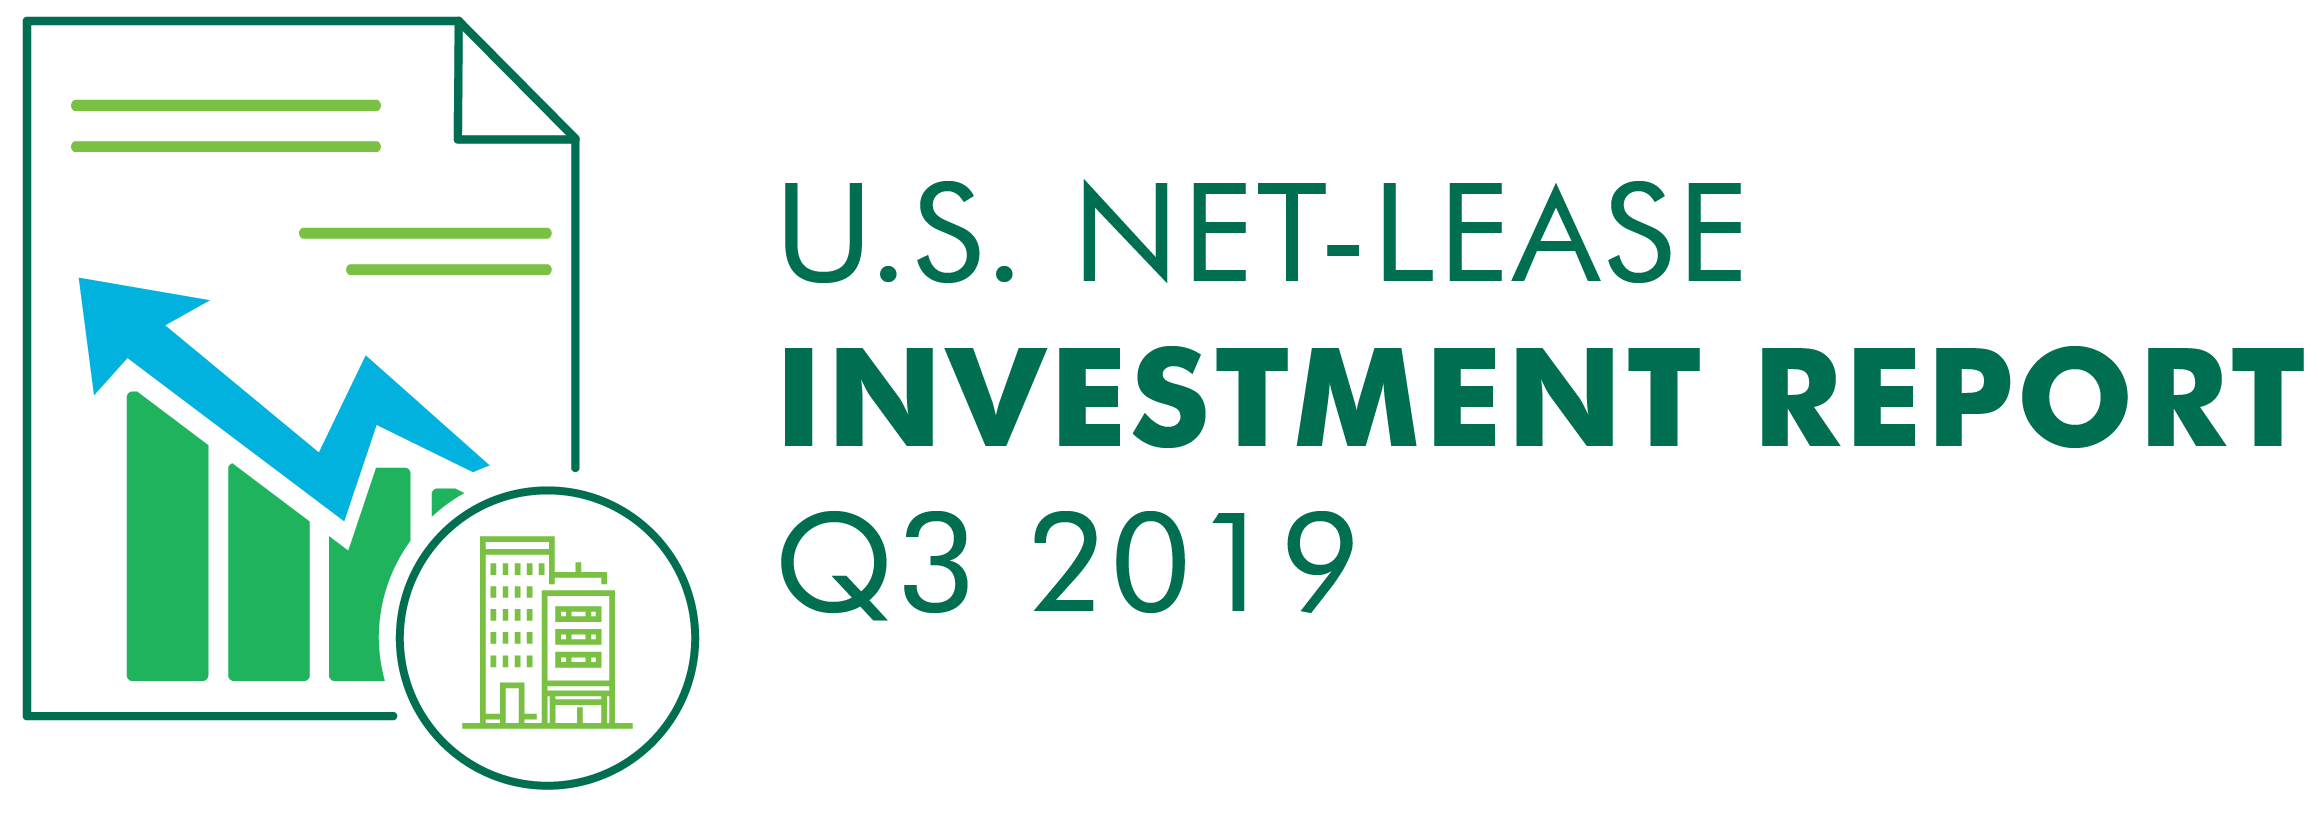 US Net Lease Investment Report Q3 2019 NLRIconsHorizontal01